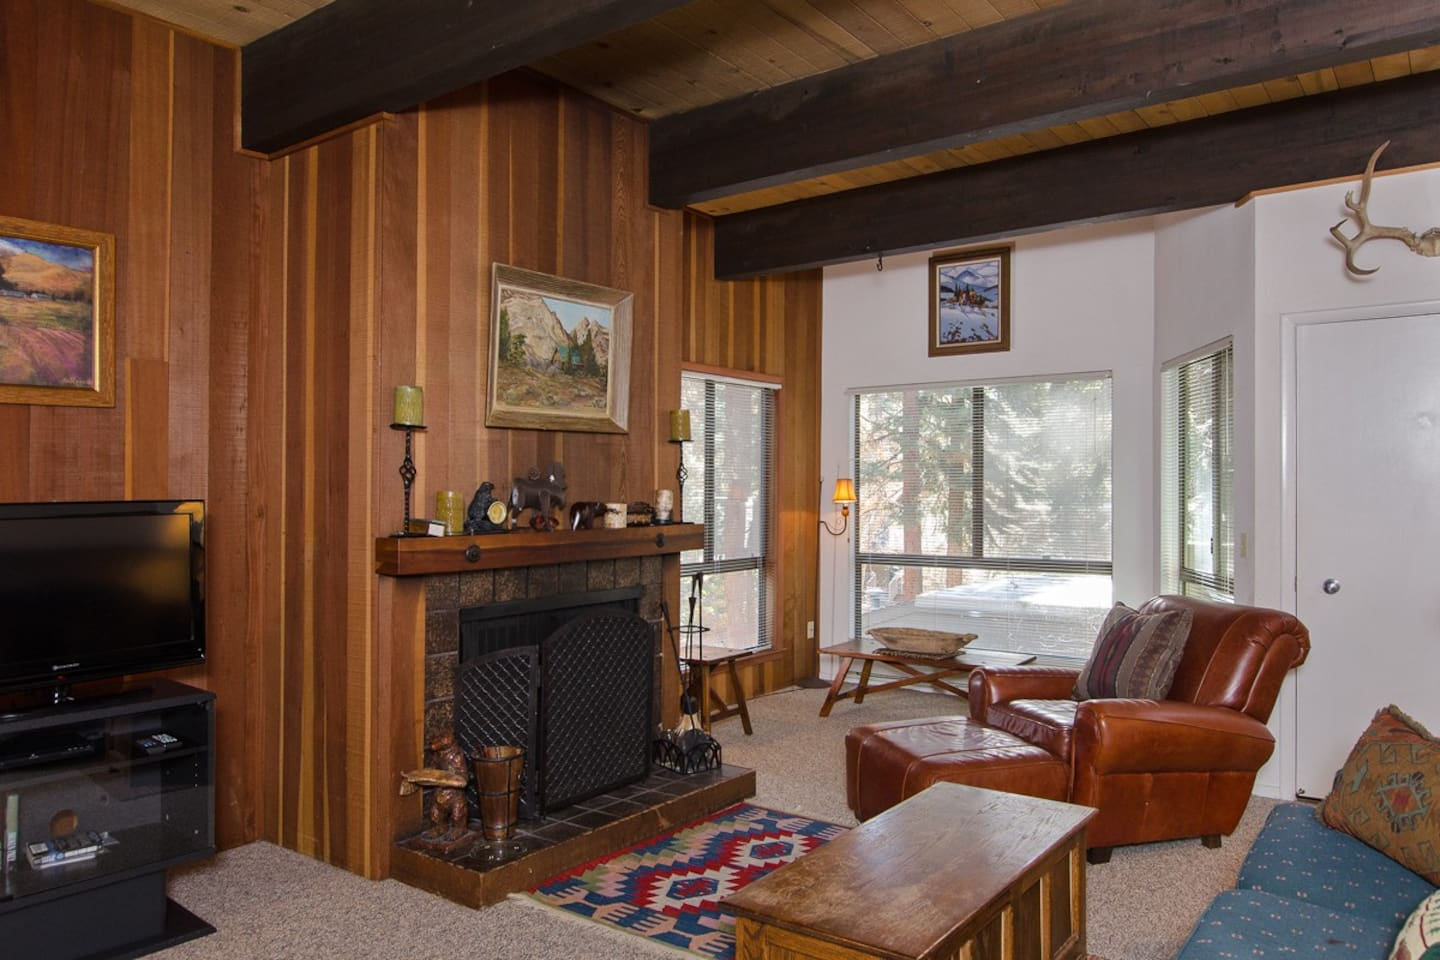 LIVING ROOM UPSTAIRS WITH FIREPLACE AND BEAM CEILINGS